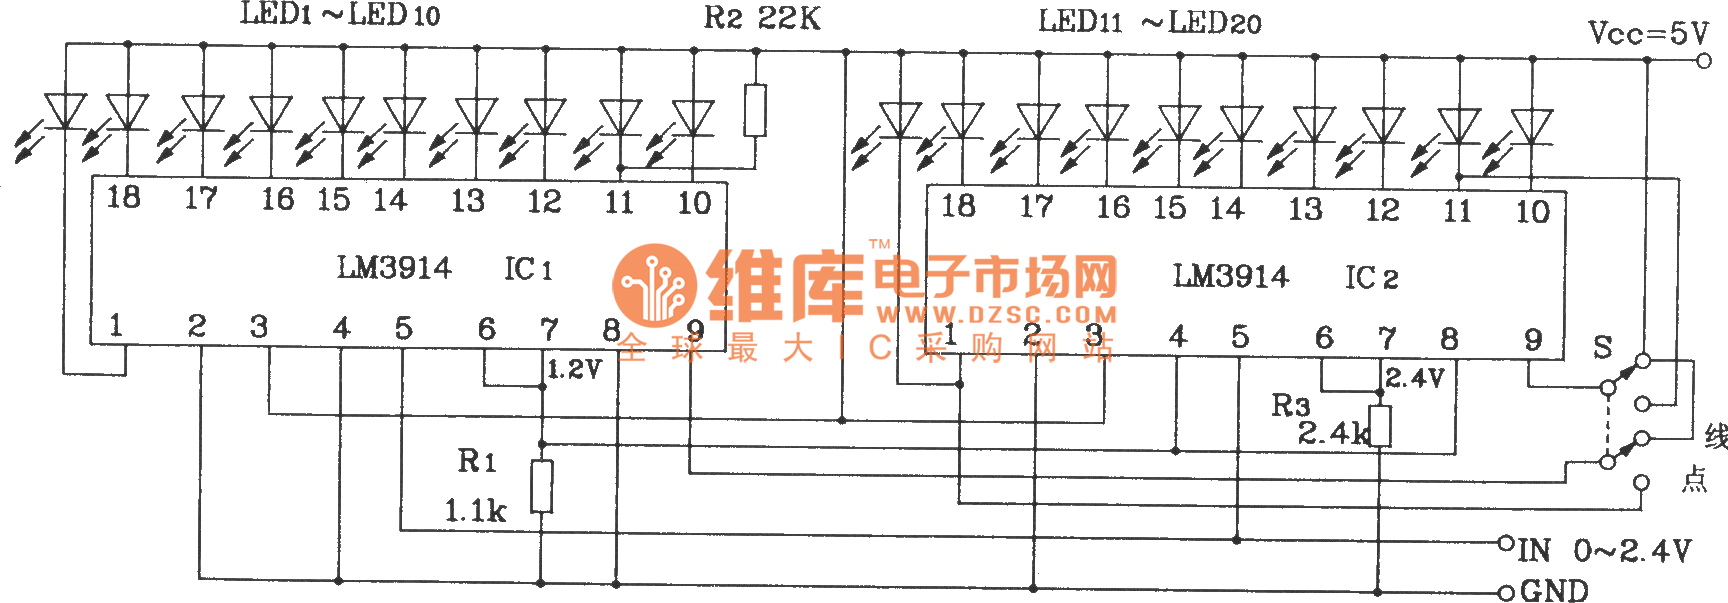 20 Bit Led Line Conversion Circuit With Two Lm3914 Discostrobelight Ledandlightcircuit Diagram Seekic